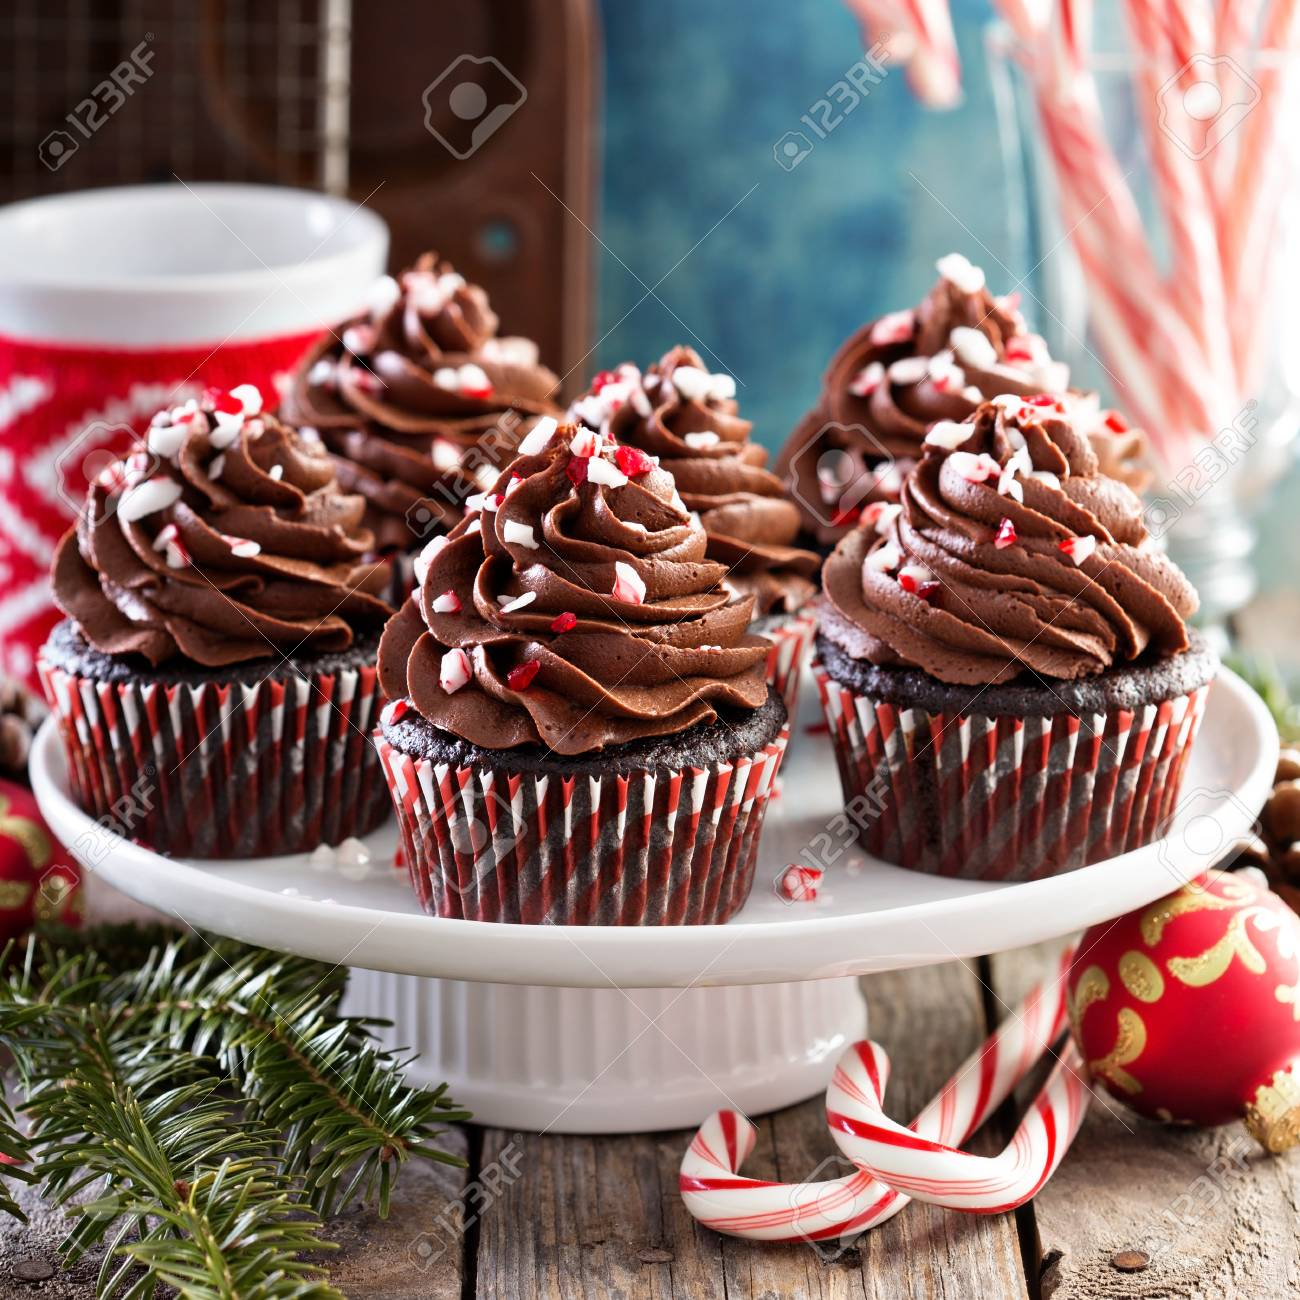 Christmas Chocolate Peppermint Cupcakes Stock Photo, Picture And ...